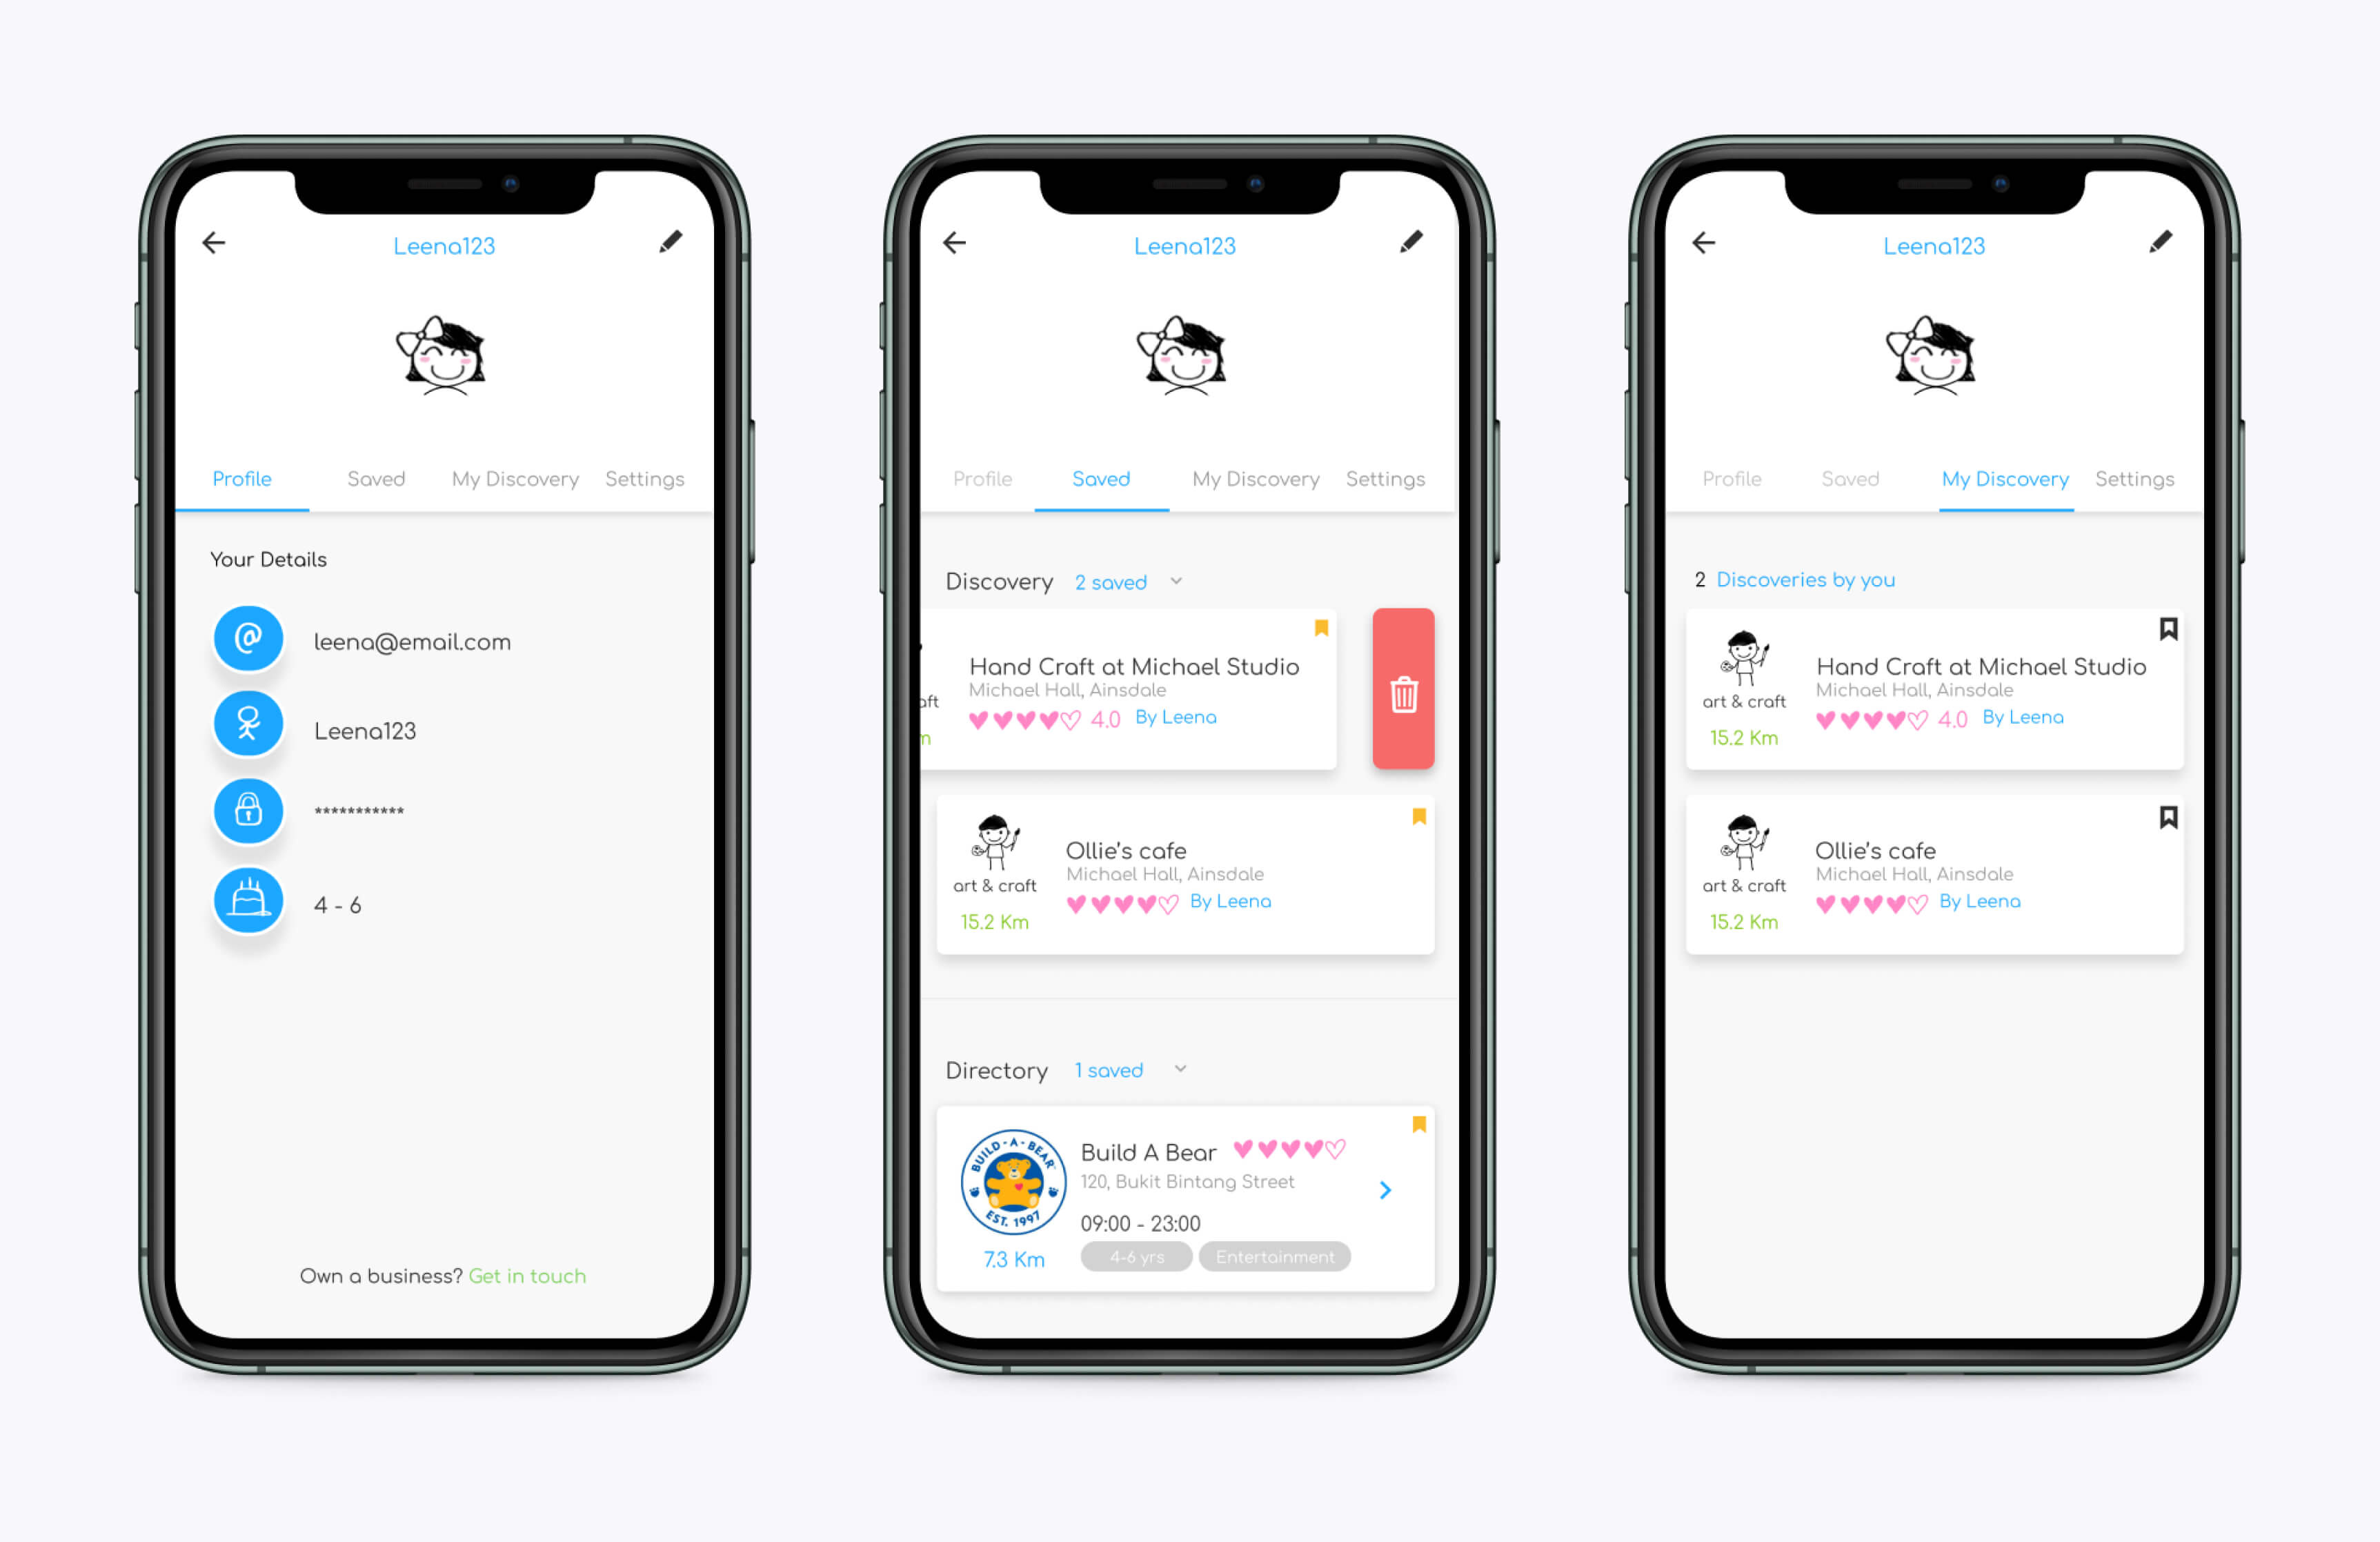 With just a tap on kidzdiretc's sanity-saving app, parents can find family-friendly events, activities and promotions all over the world. Co-located in the UK and Malaysia, we helped this startup design, build and launch multiple products across web, iOS and Android.